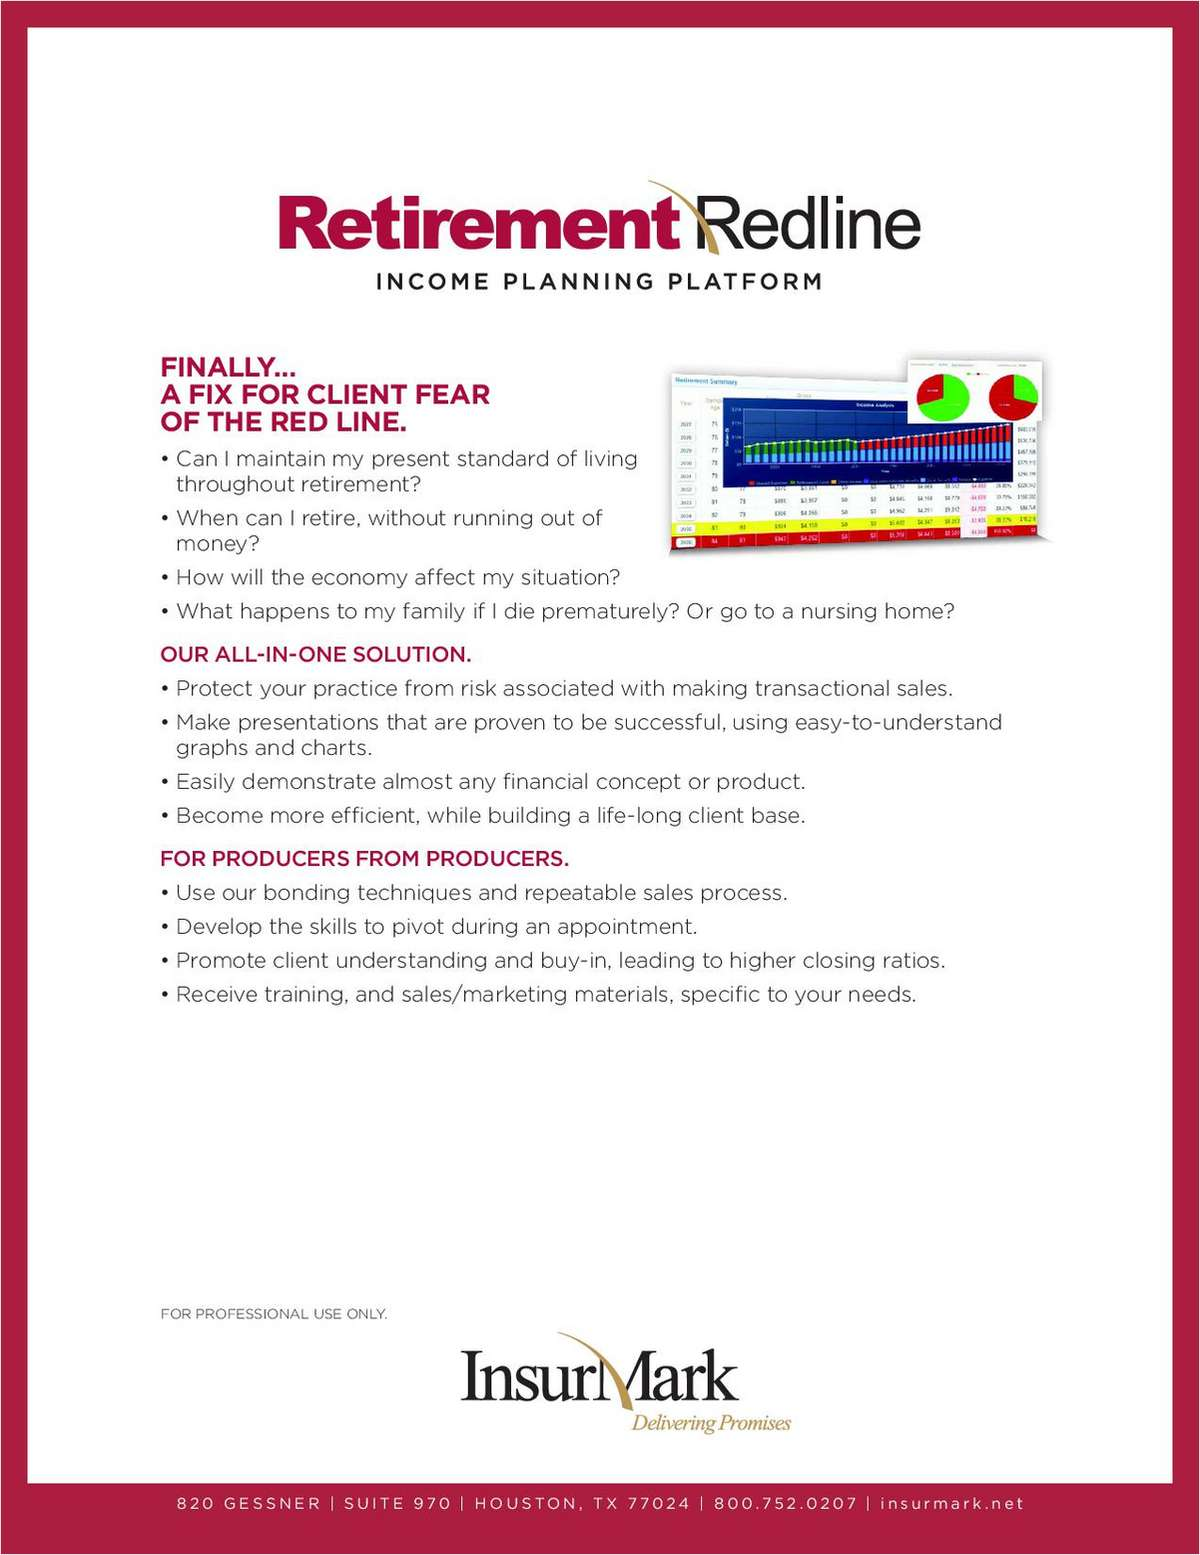 How to Remove Confusion from the Retirement Planning Process